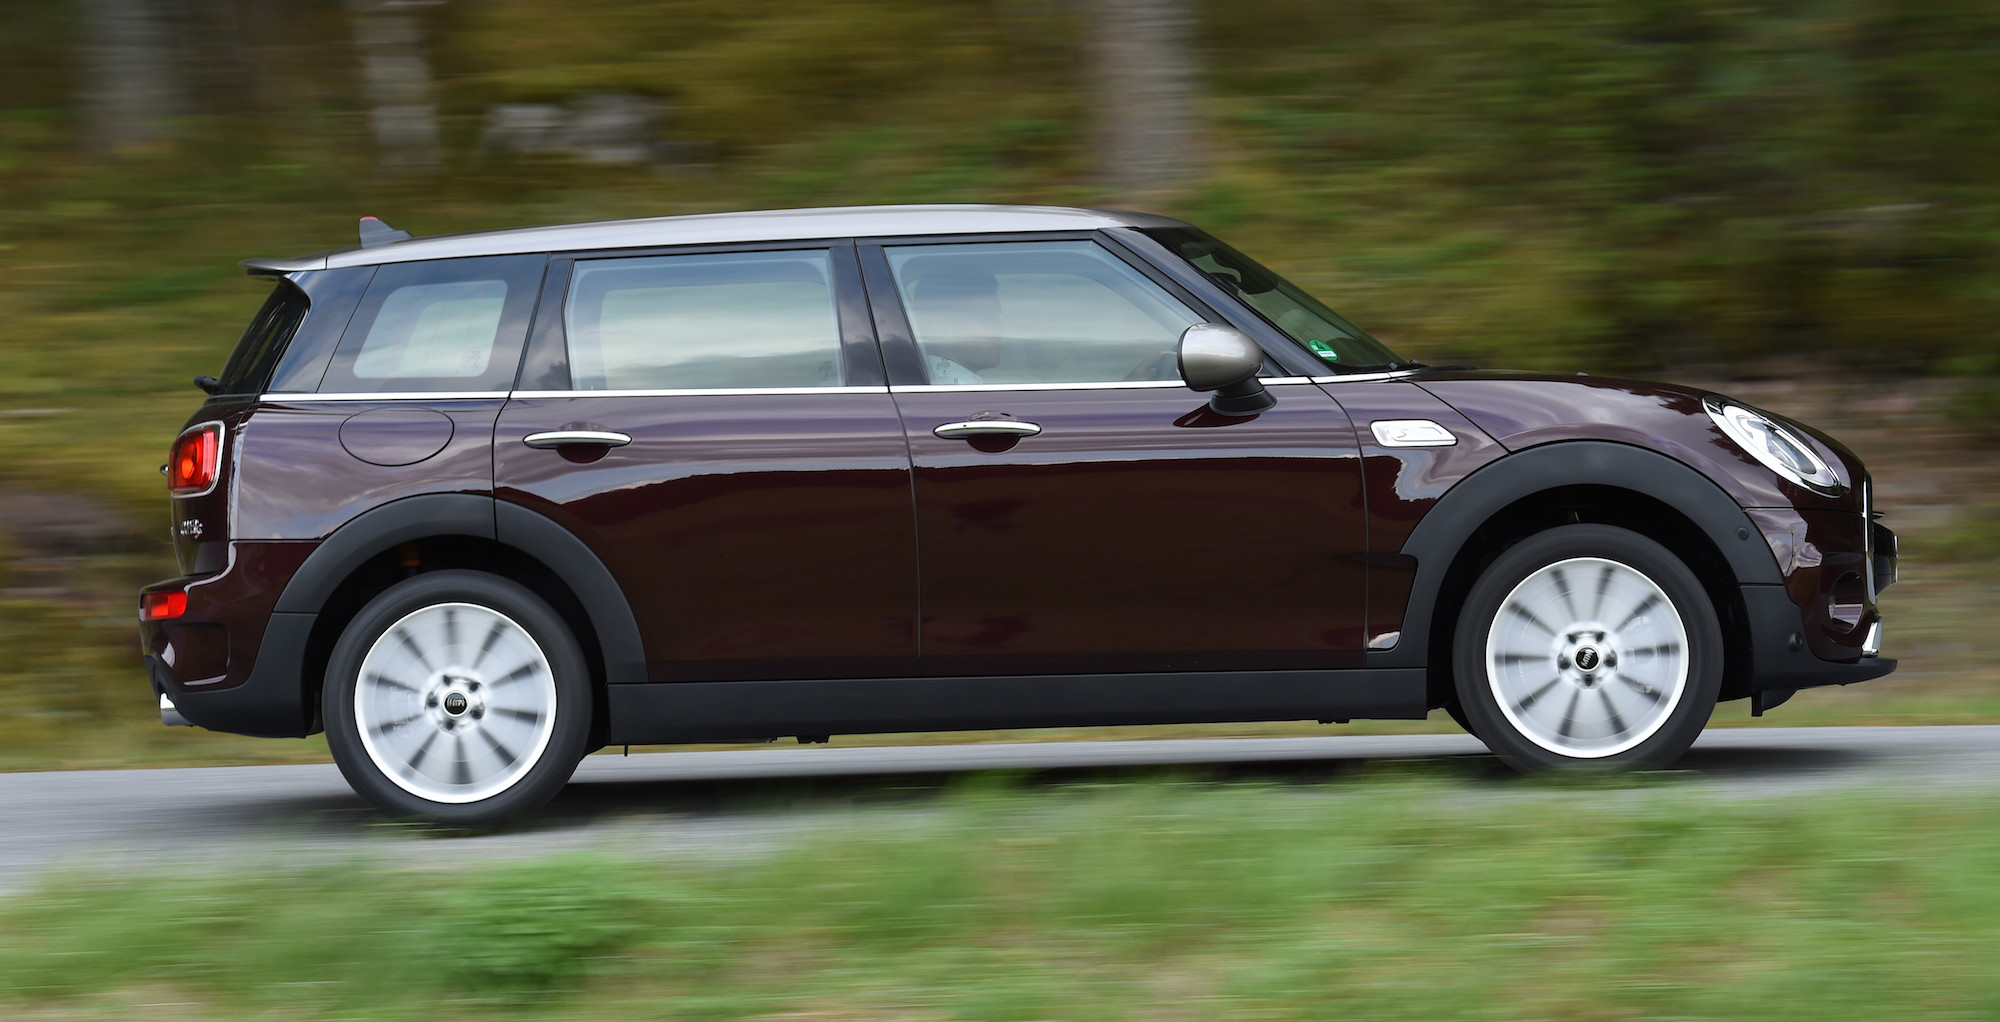 2016 Mini Cooper S Clubman Side Exterior (Photo 16 of 17)